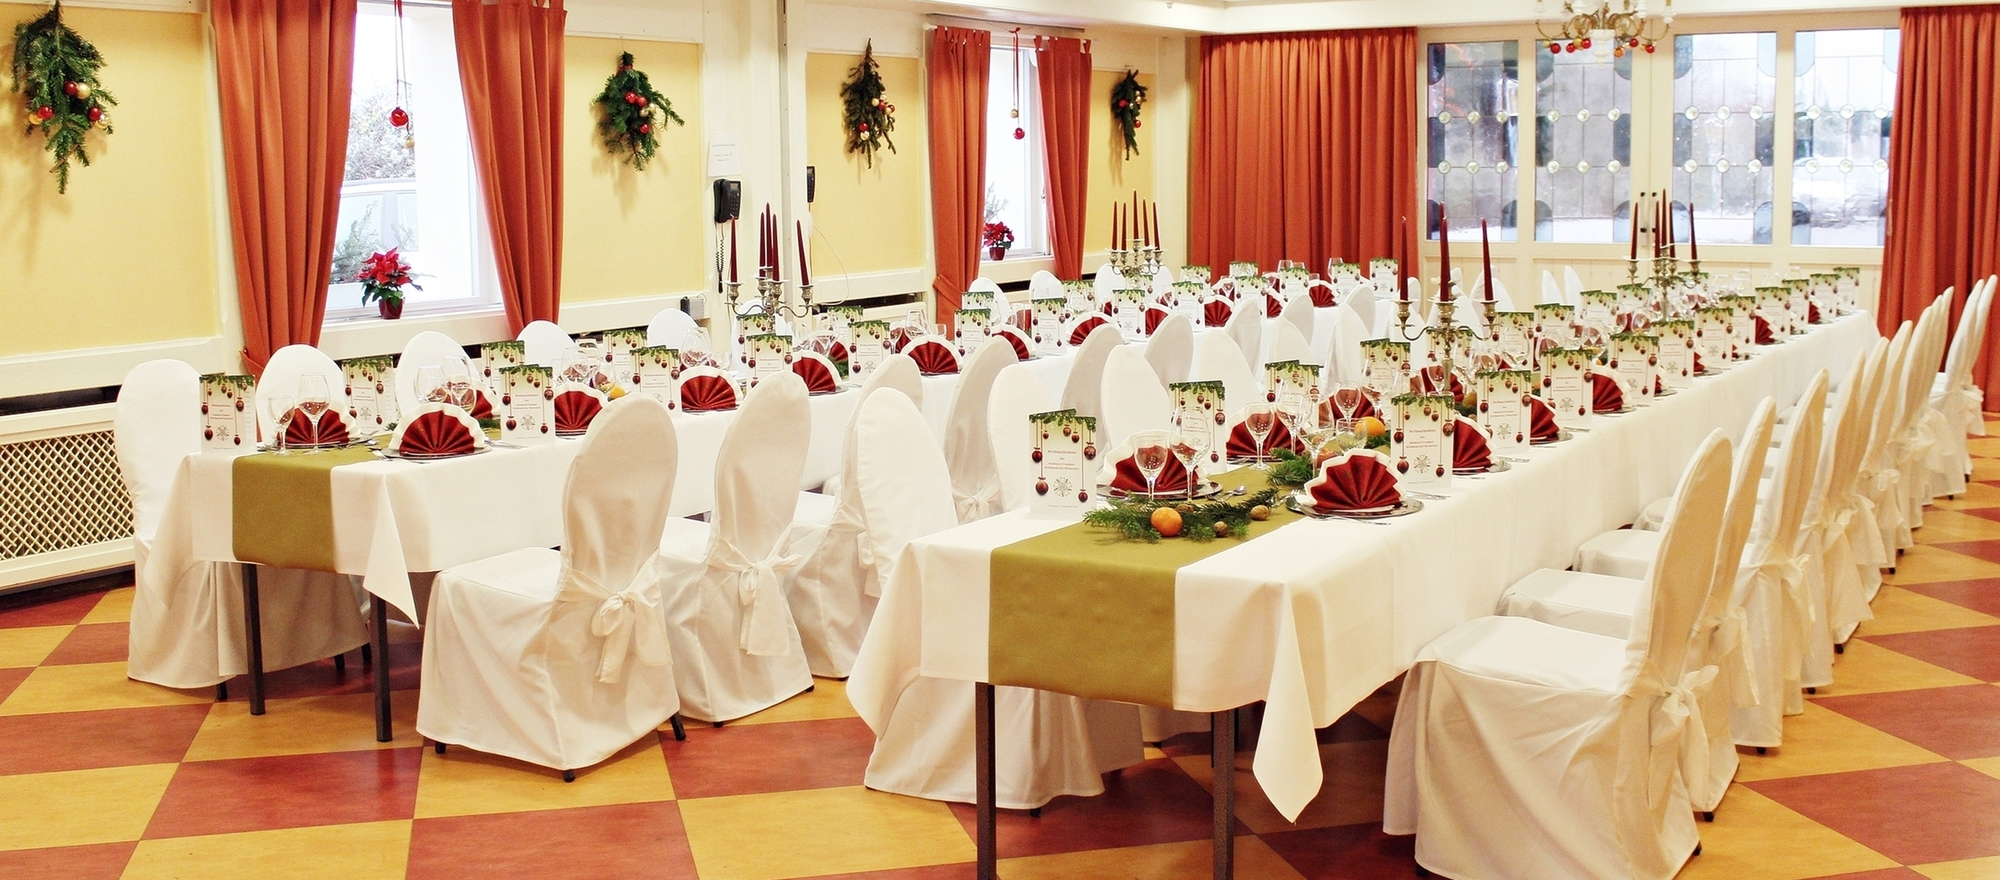 The perfect location for candle light-dinner or wedding-celebrations with family at the 3-star-superior hotel Ringhotel Wittelsbacher Hoeh in Wuerzburg